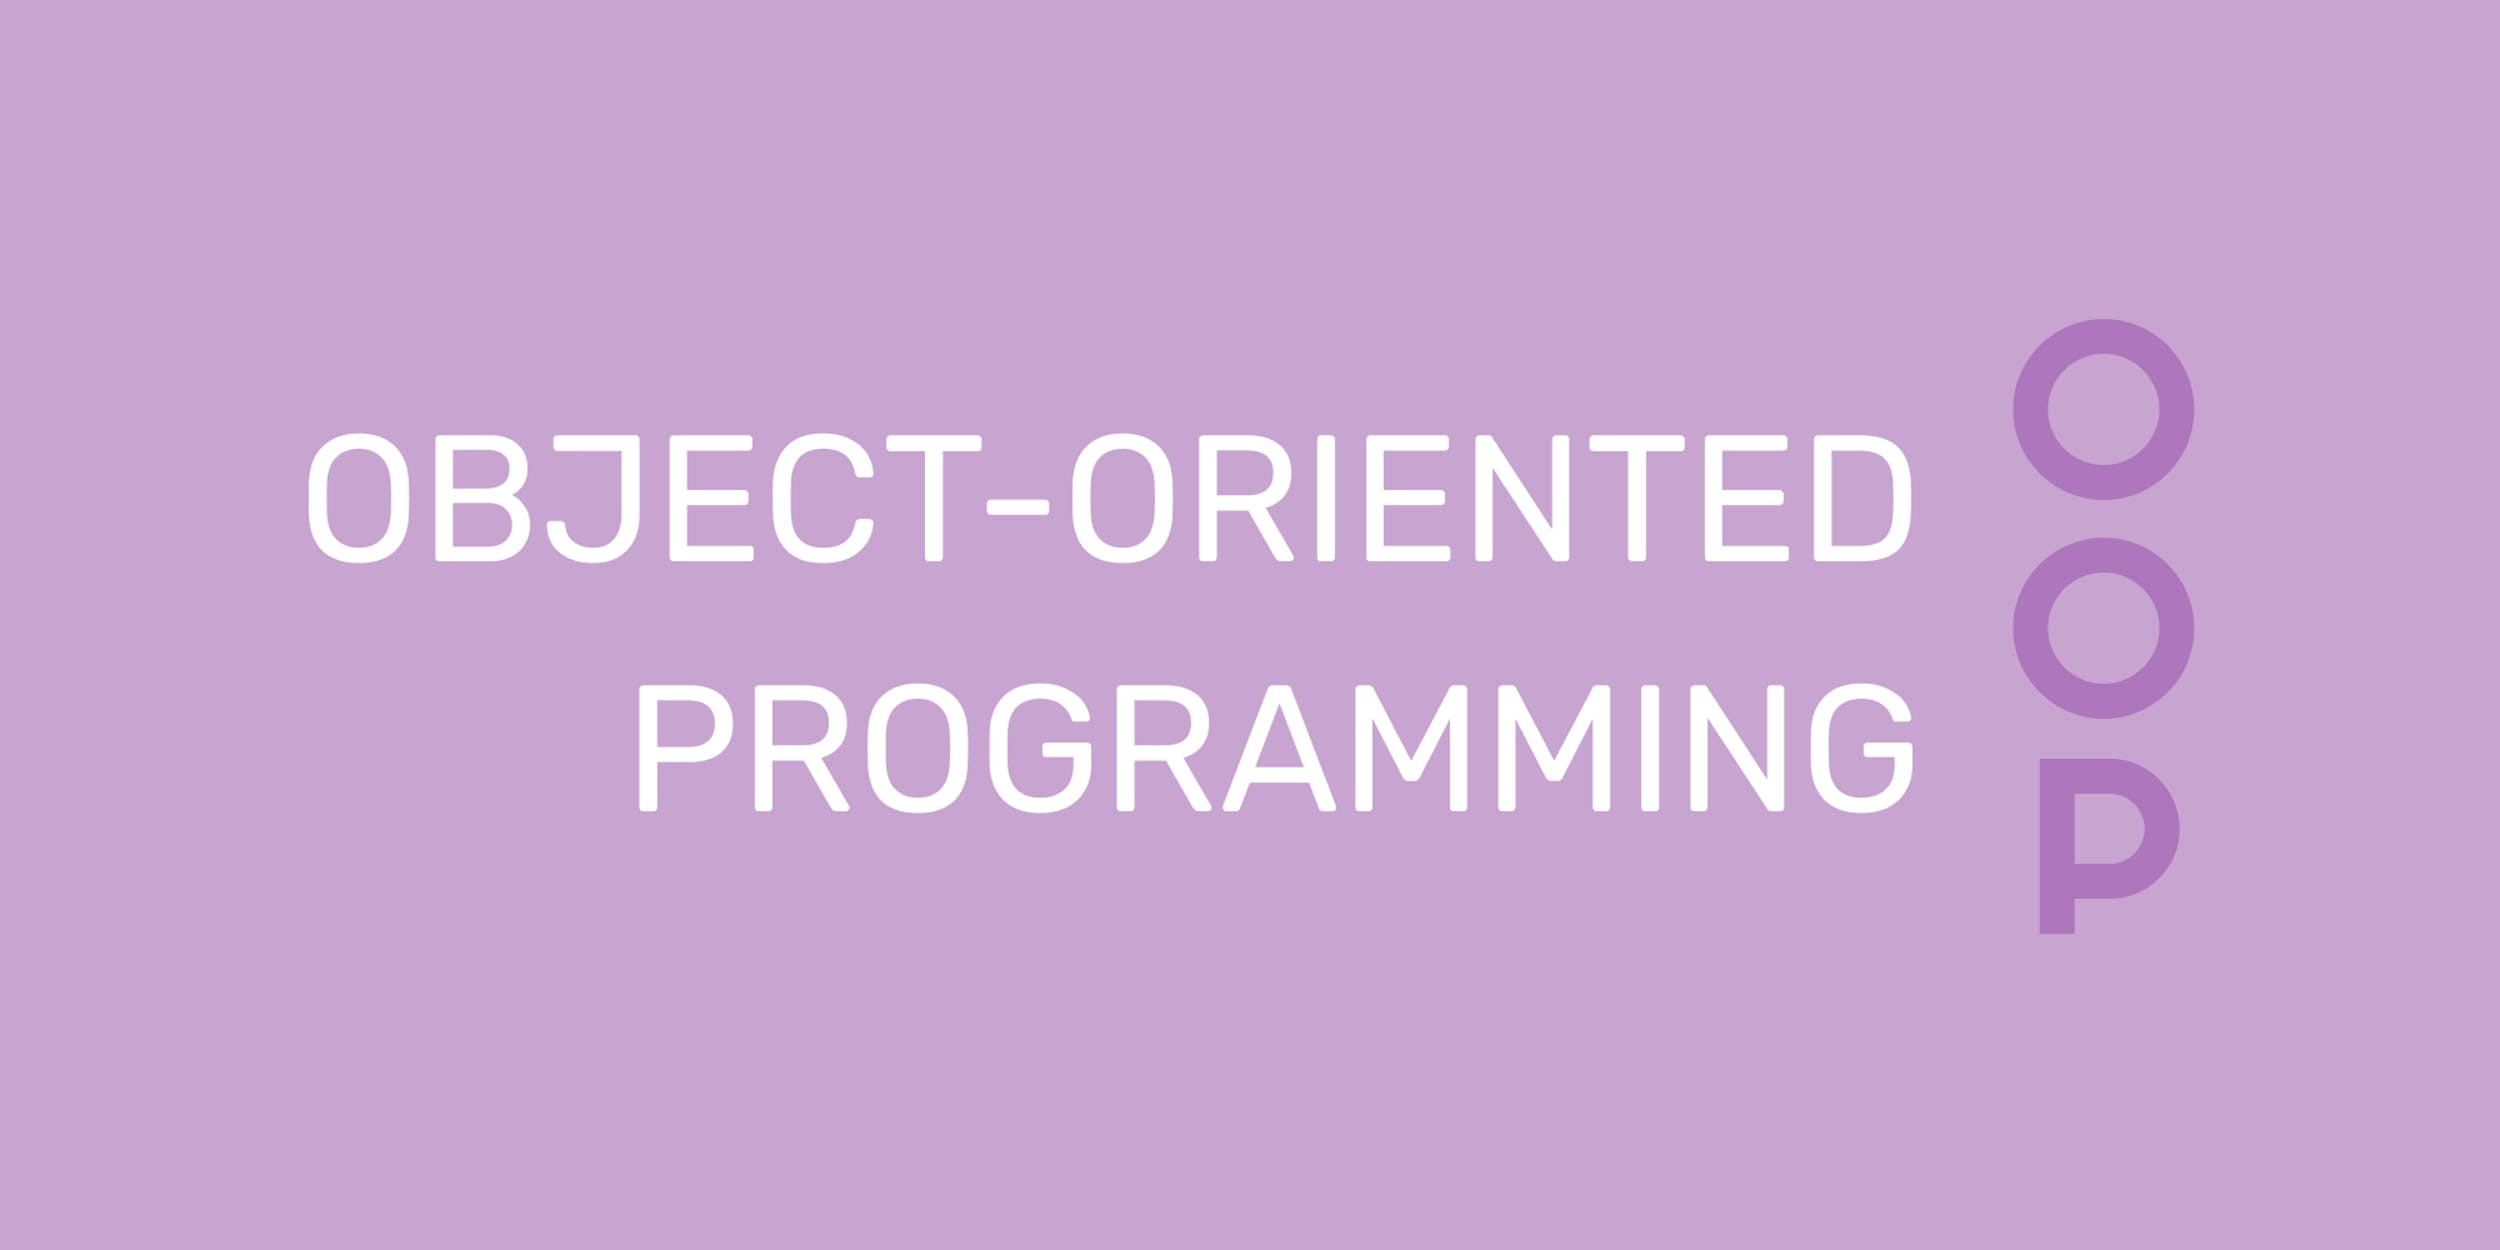 Object-oriented programming explained